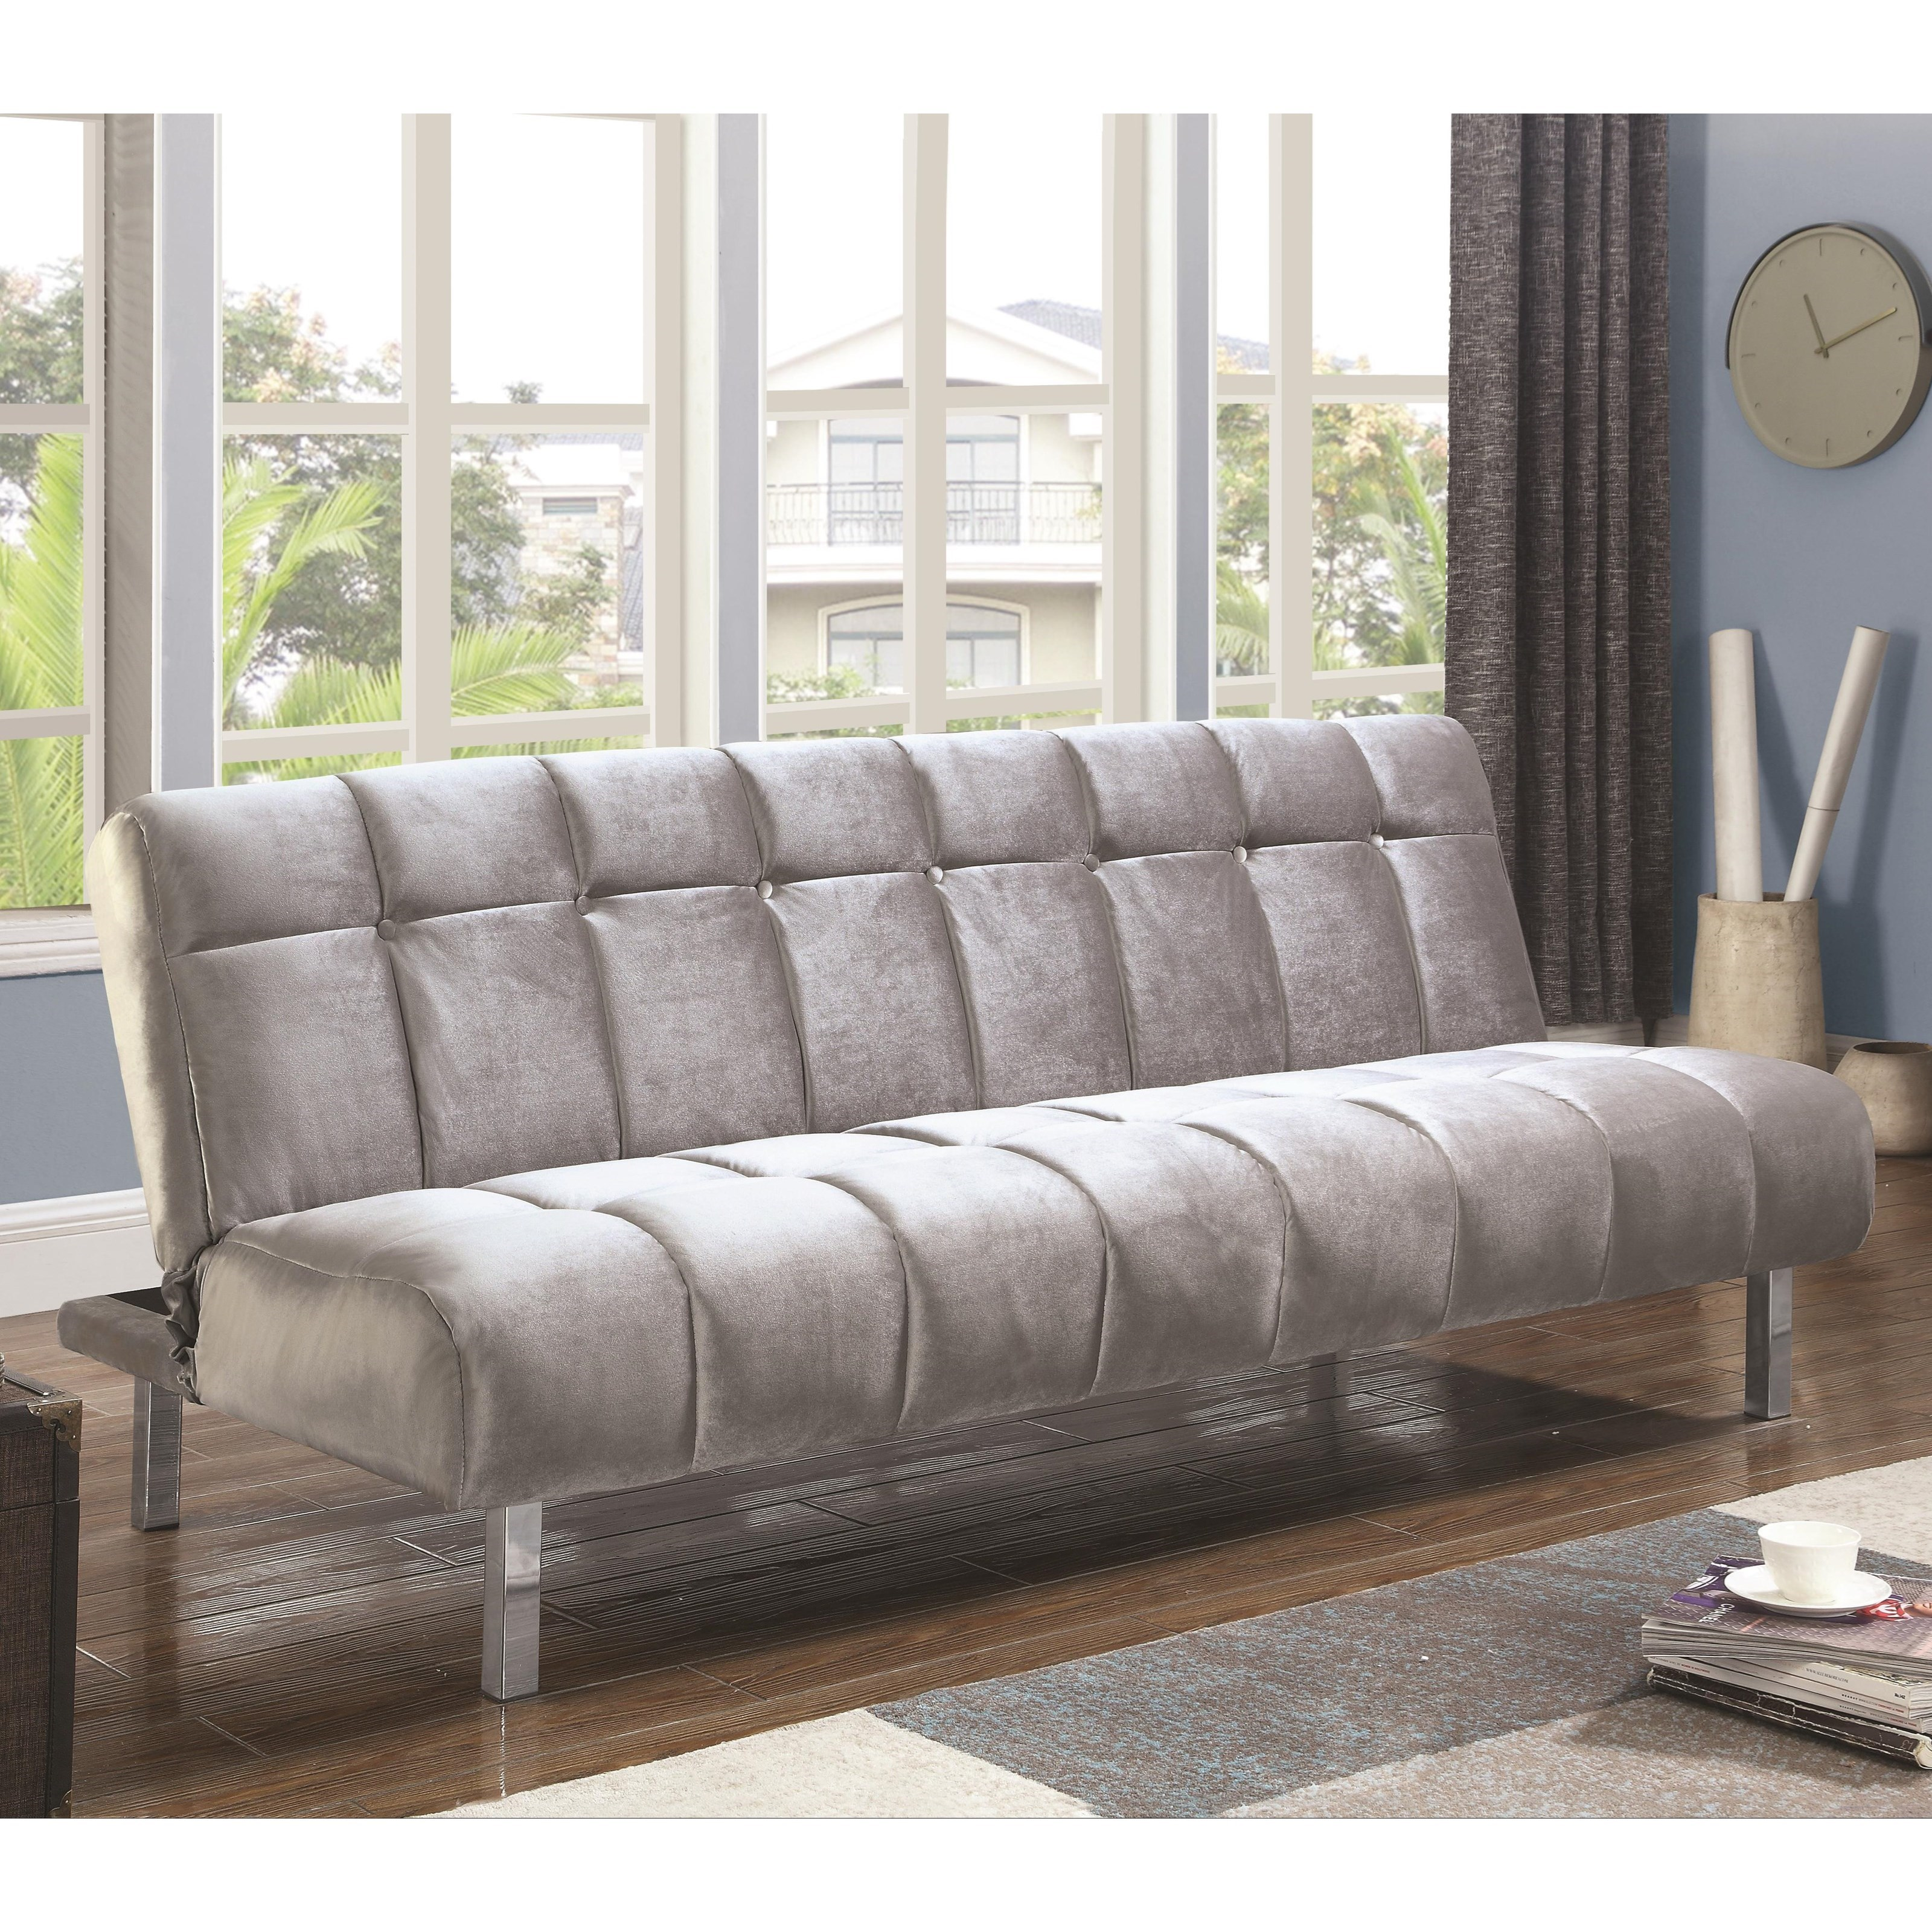 Coaster Sofa Beds and Futons Contemporary Sofa Bed with Channeled Design  Value City Furniture